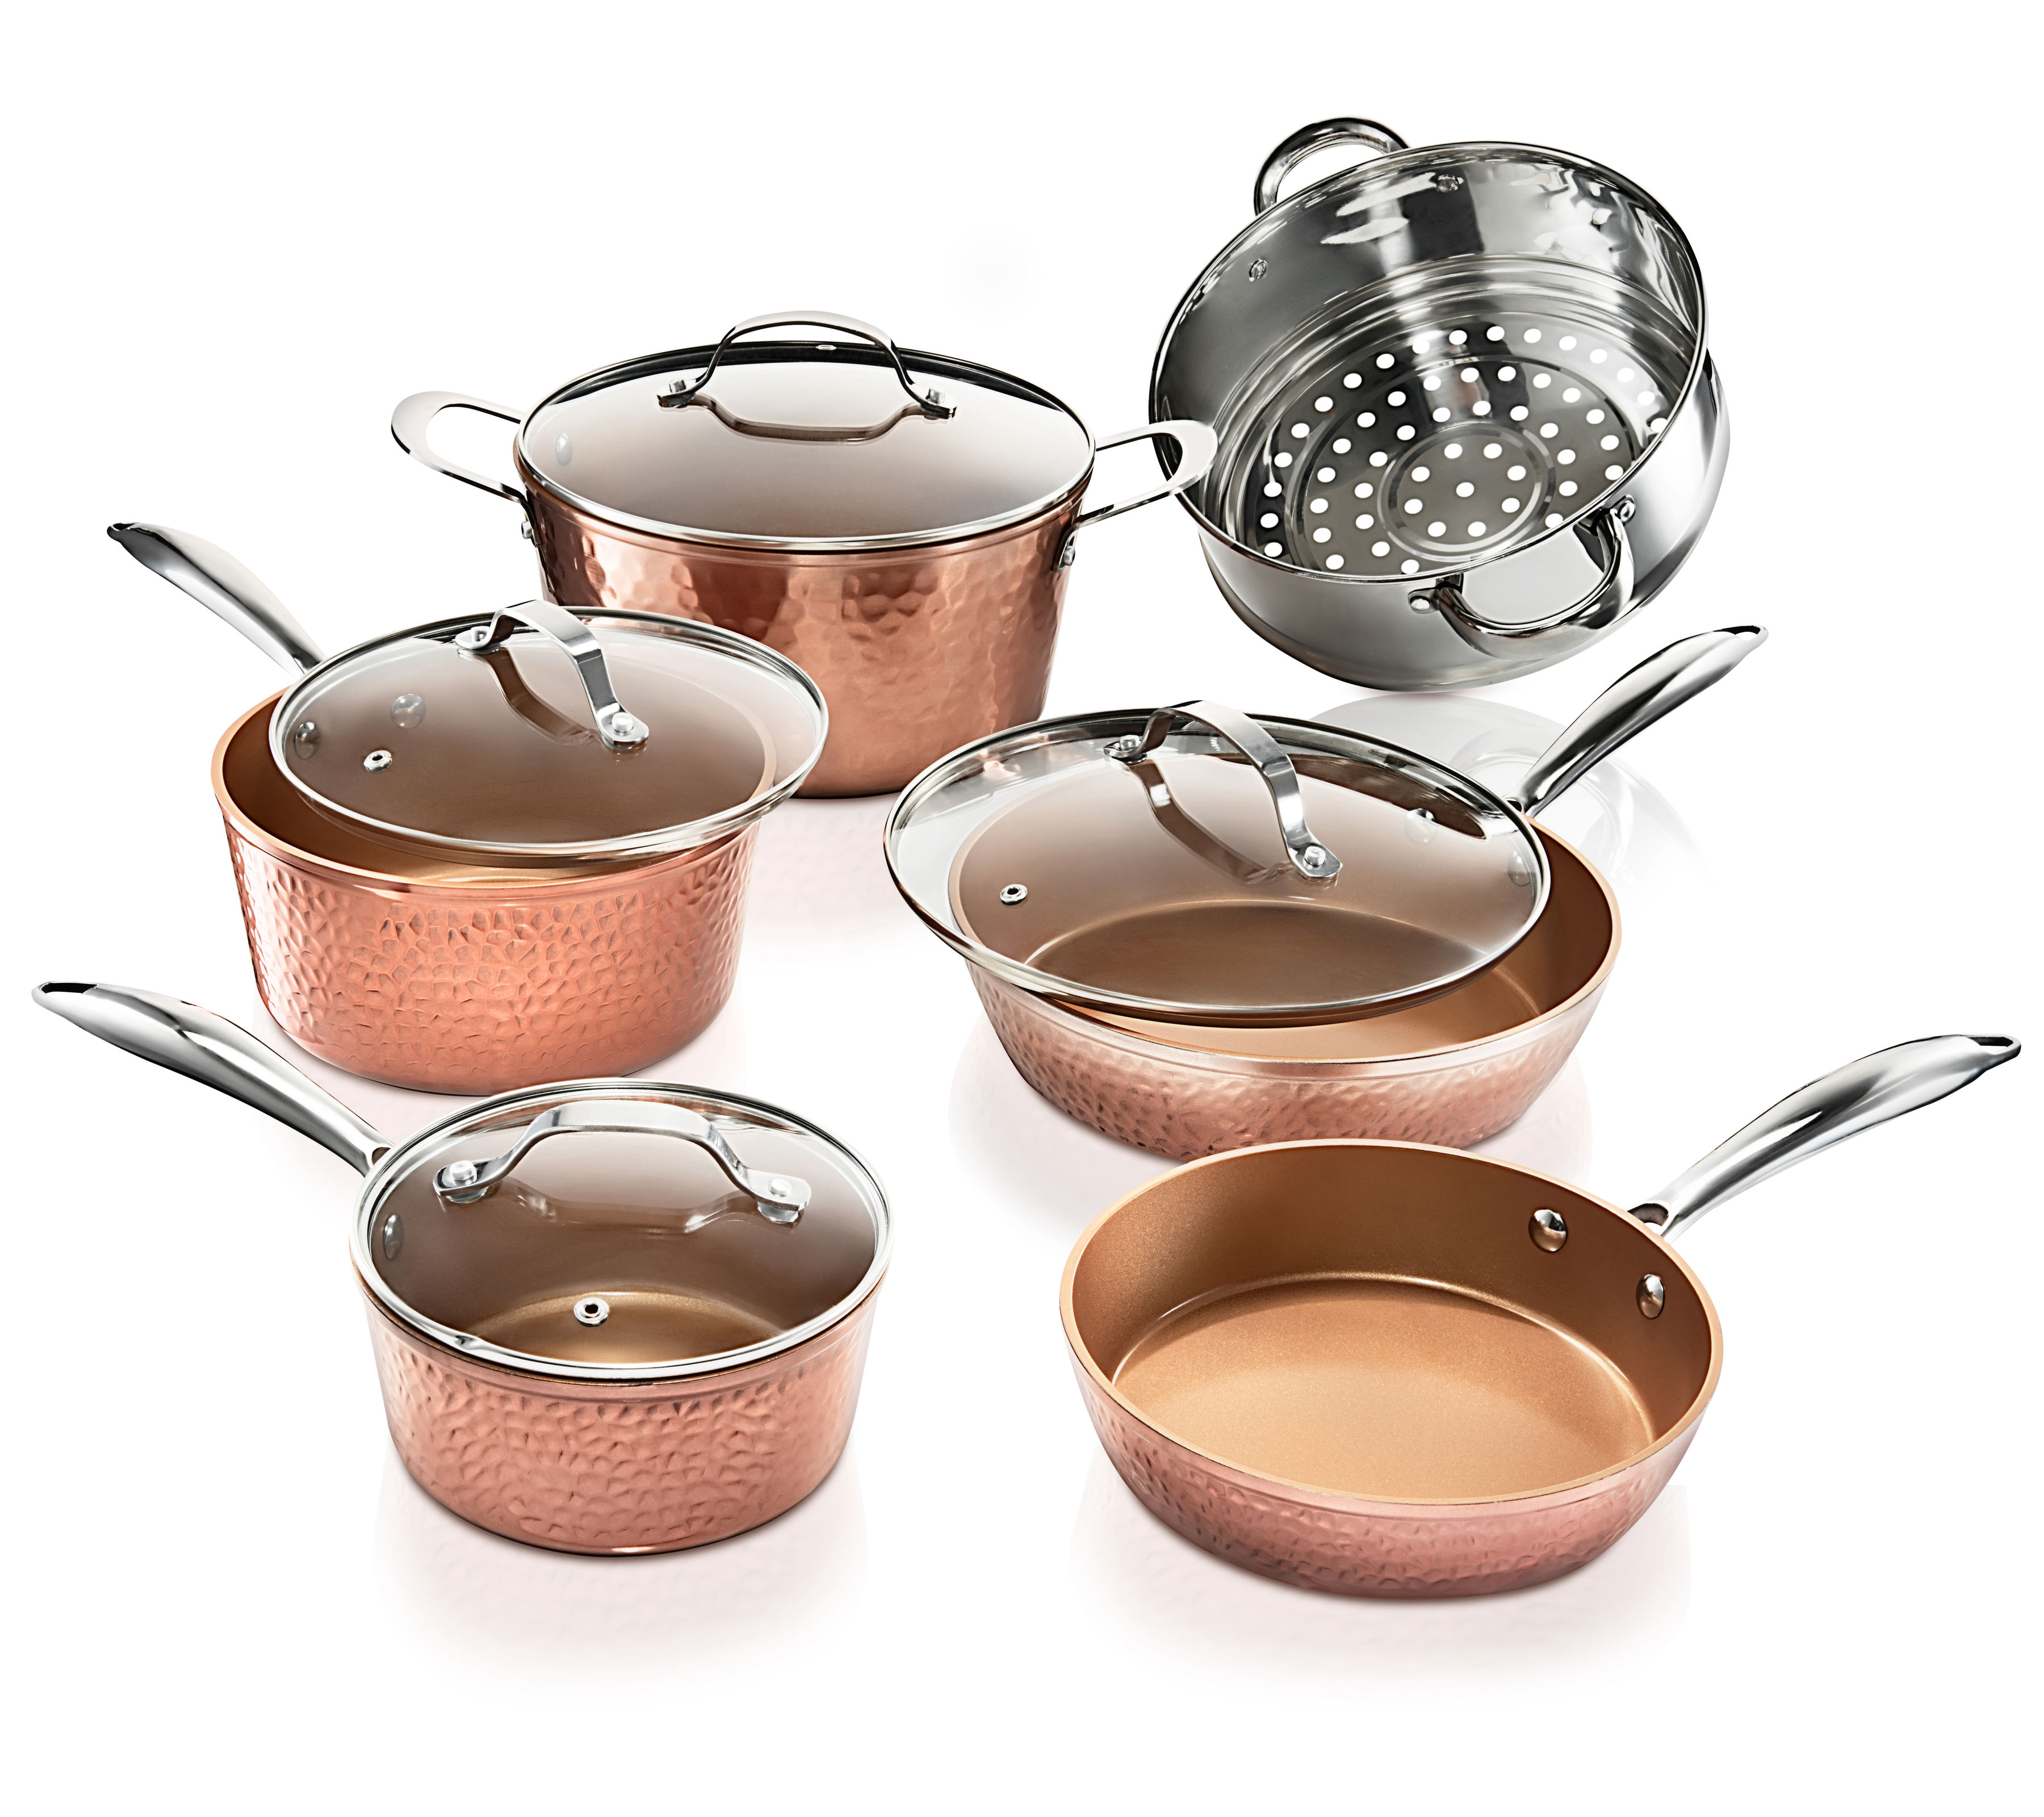 Gotham Steel Hammered Collection – 10 Piece Premium Cookware Pots and Pans Set with Triple Coated Nonstick Copper Surface, Oven, Stovetop & Dishwasher Safe